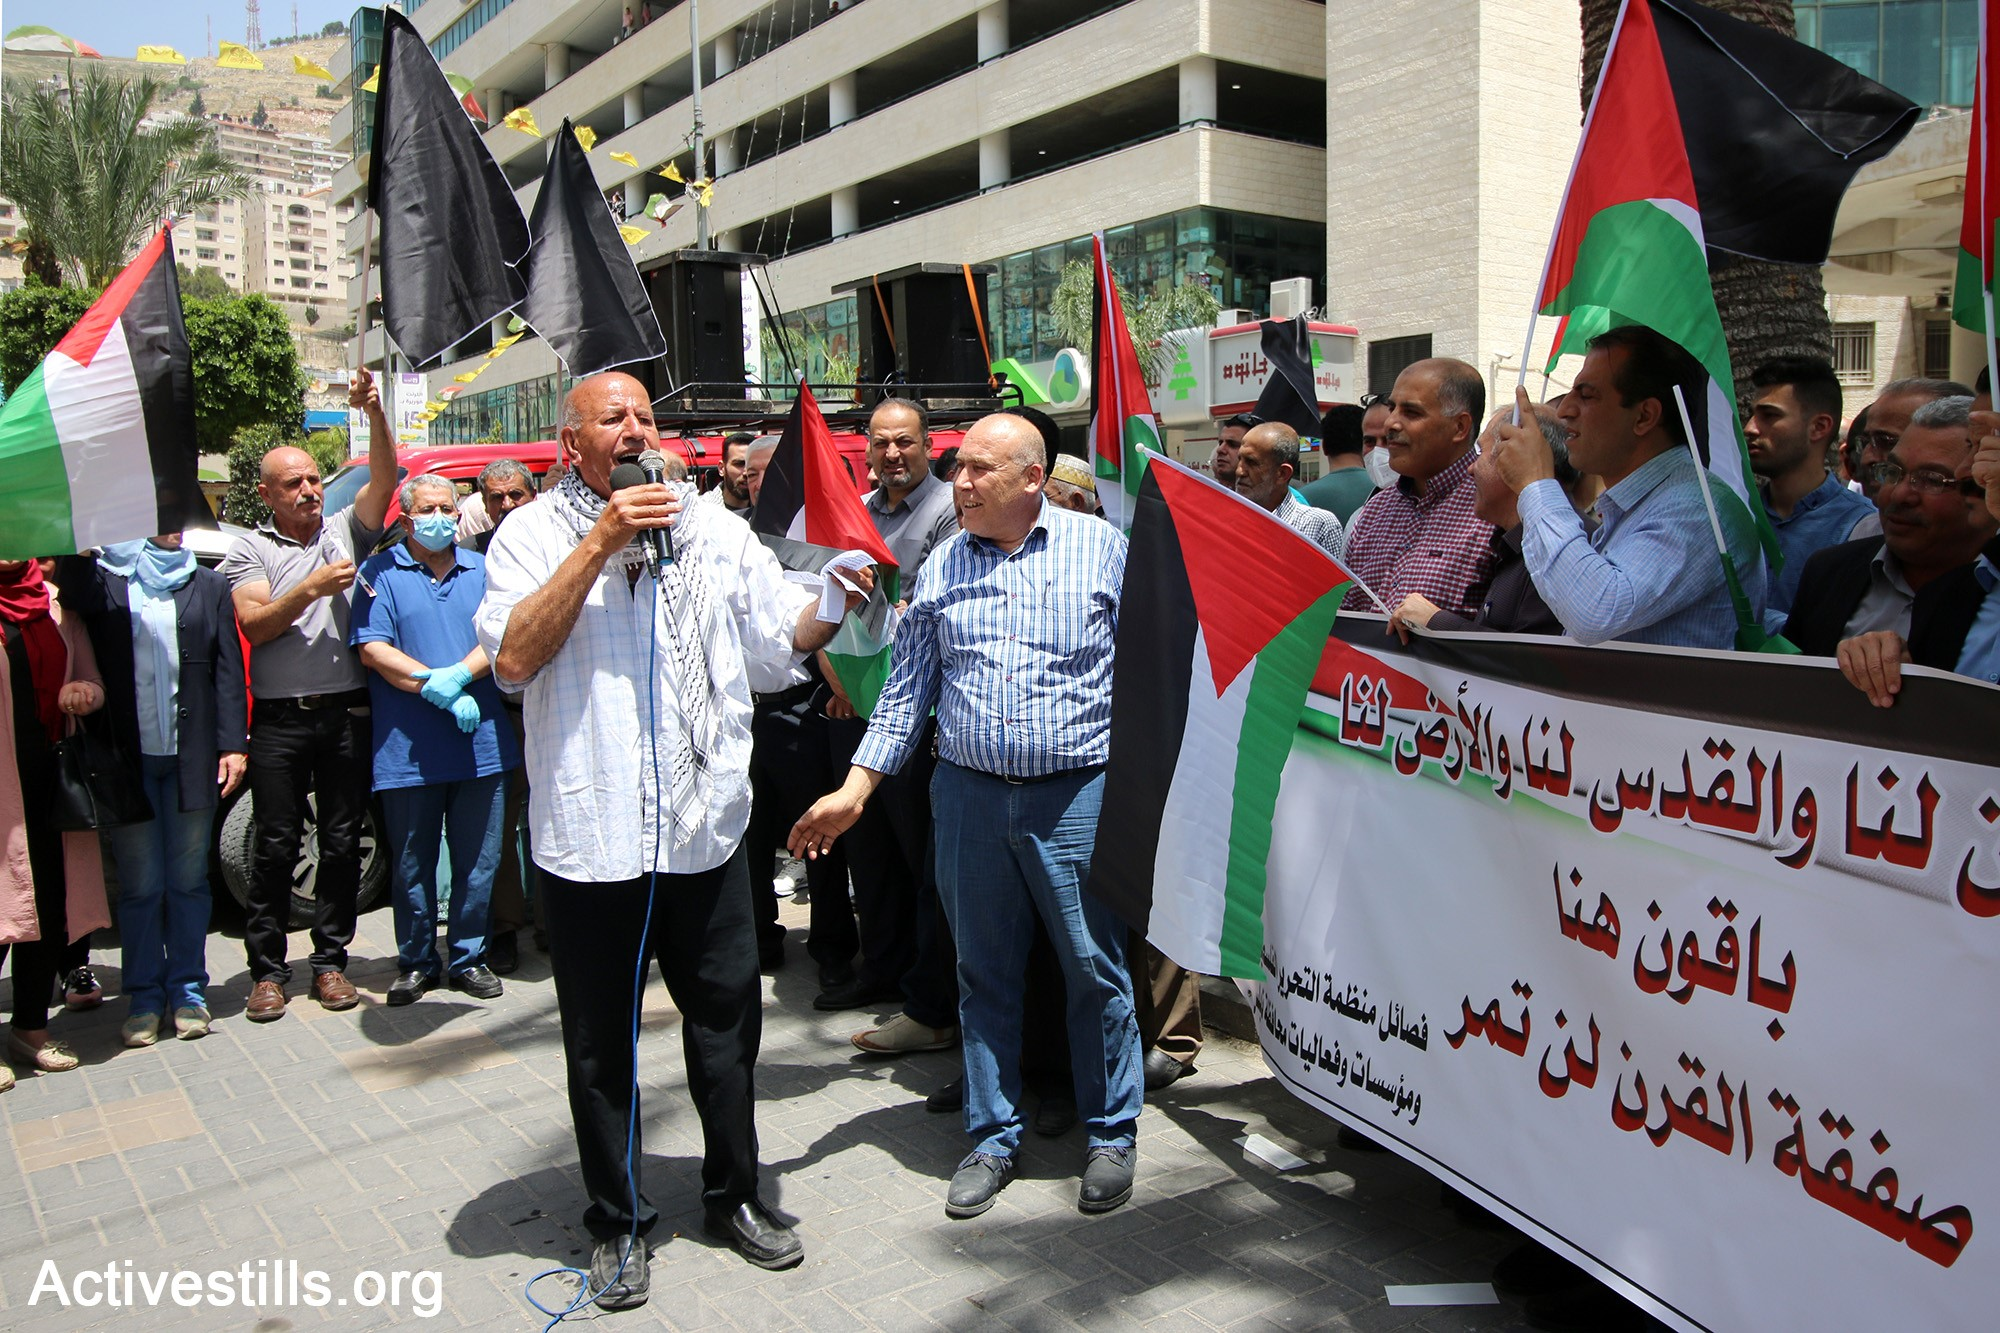 """Palestinians protest in Nablus against Israel's plans to annex parts of the occupied West Ban, May 14, 2020. The large banner reads, in part """"… Jerusalem is ours and the land is ours; [We are ] staying here; the [US-Israeli] 'Deal of the Century' will not pass."""""""